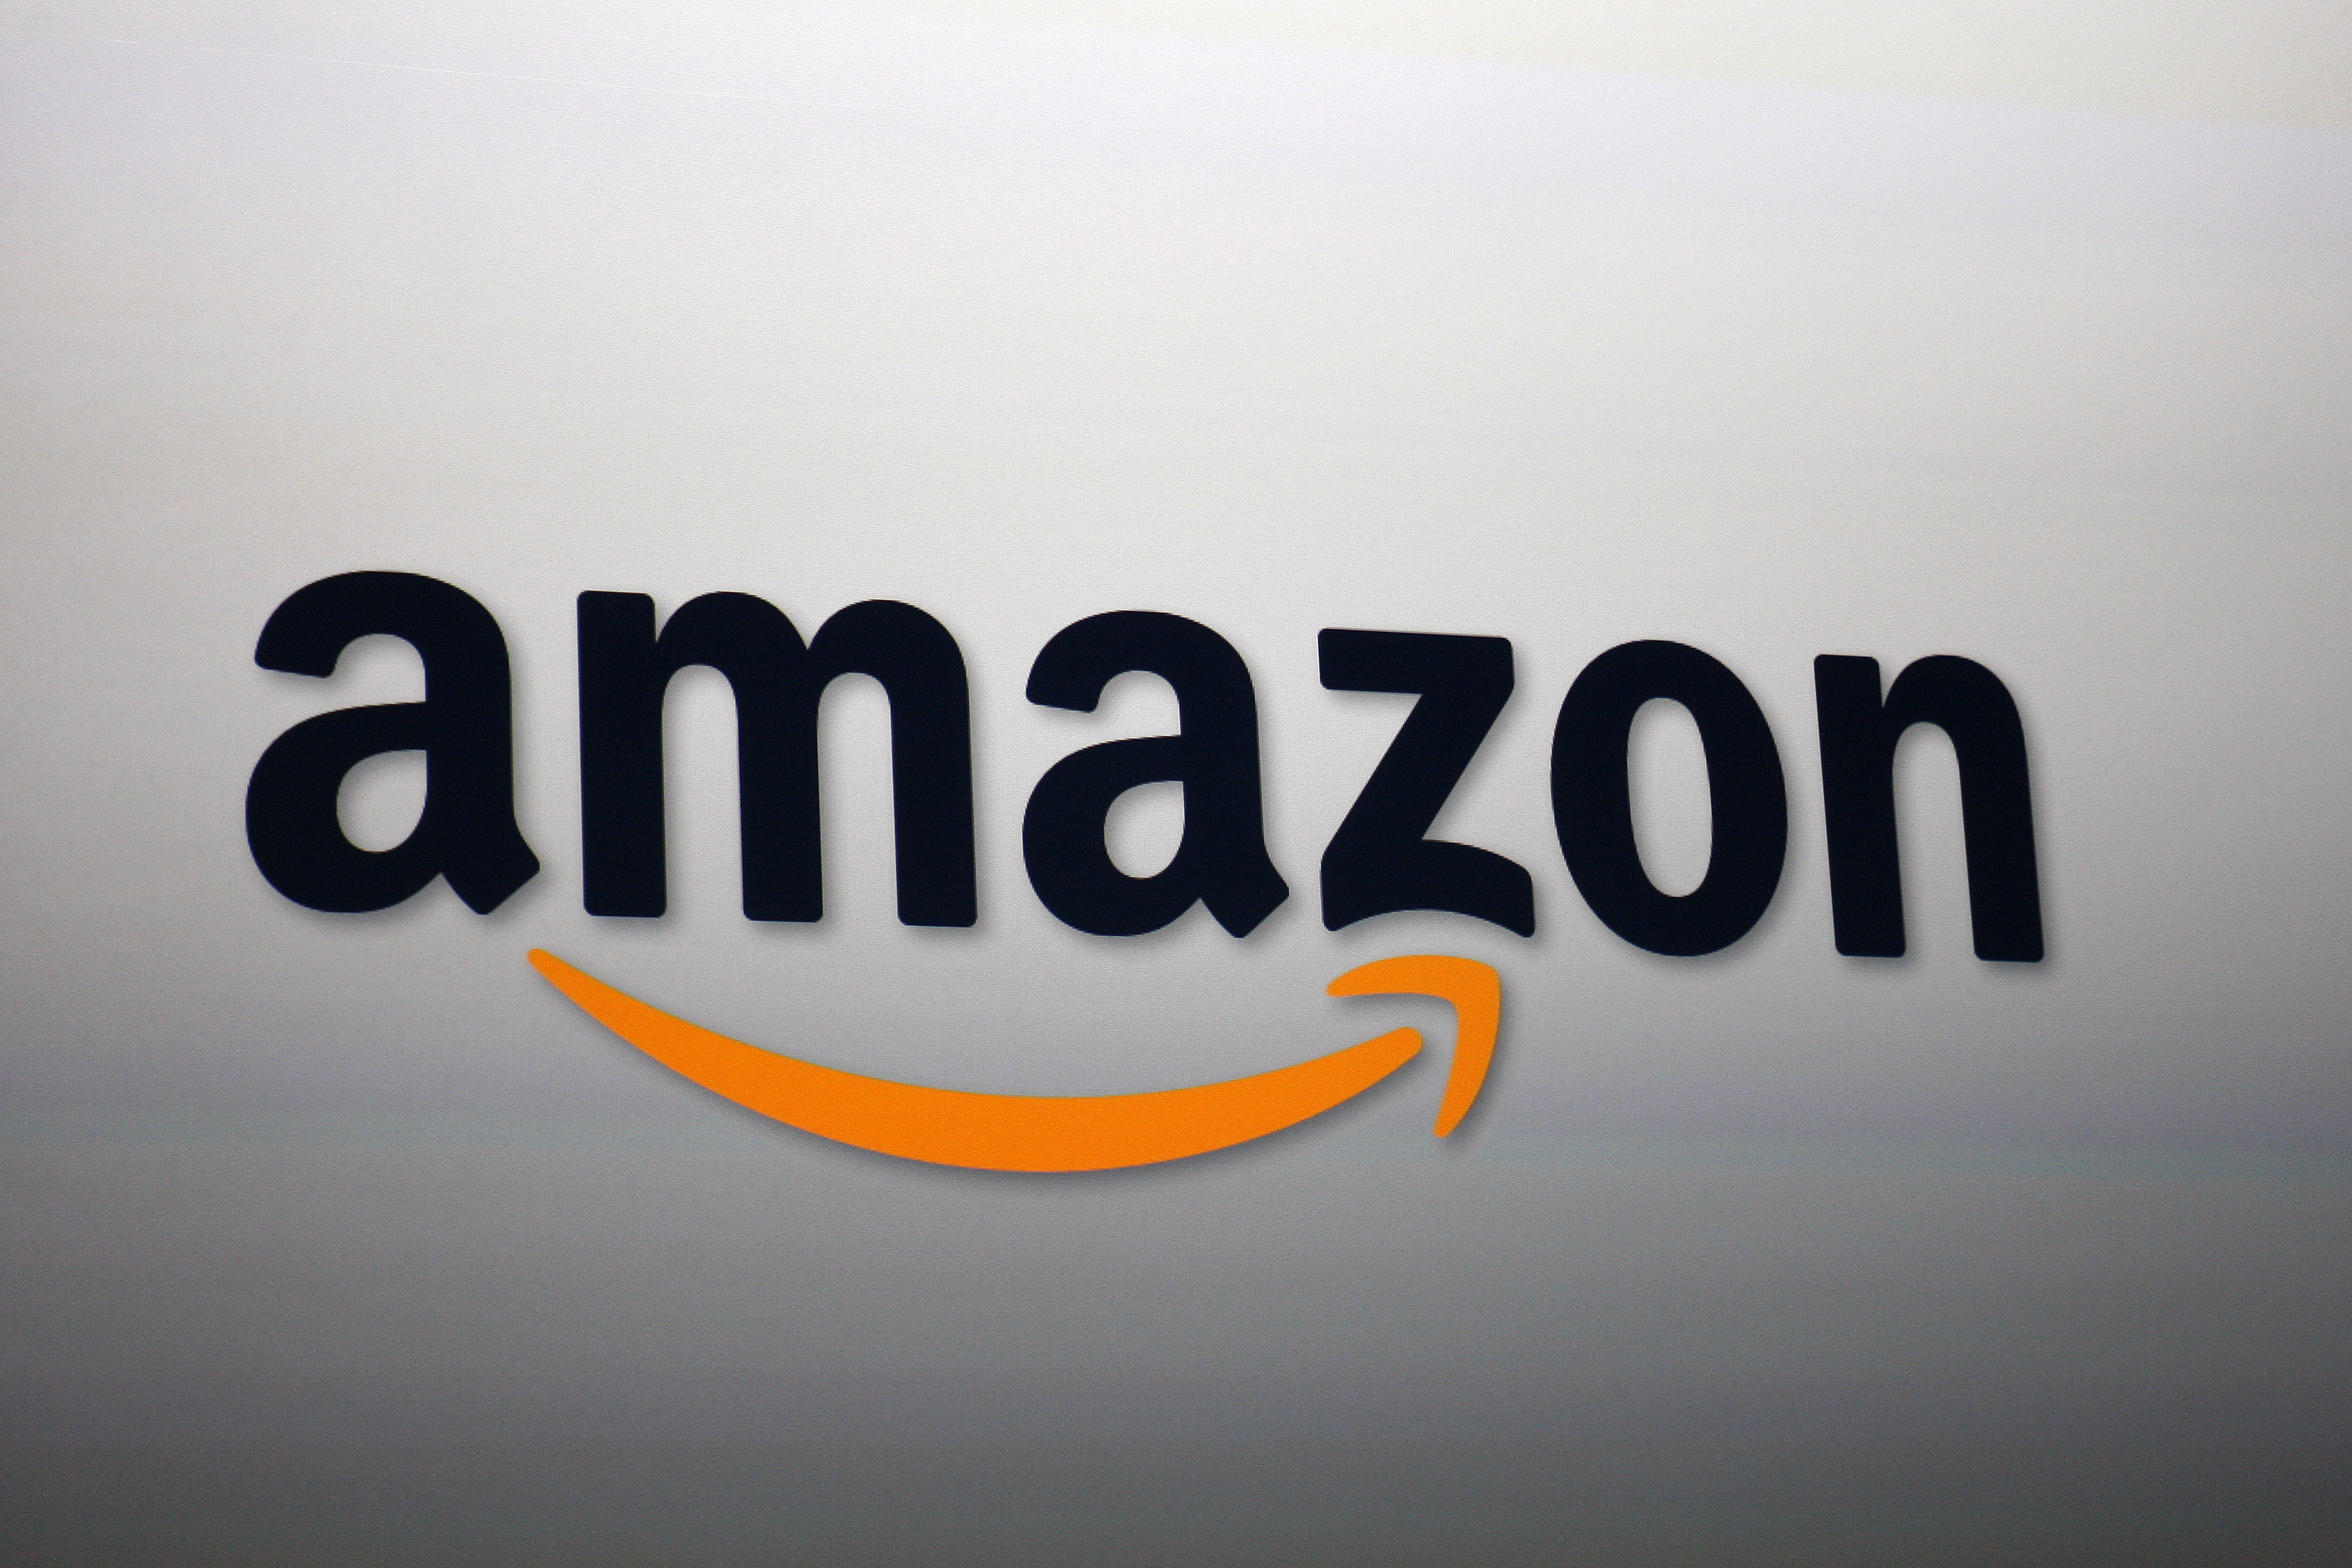 Amazon Reportedly Building A Set-Top Box To Stream Video In Homes